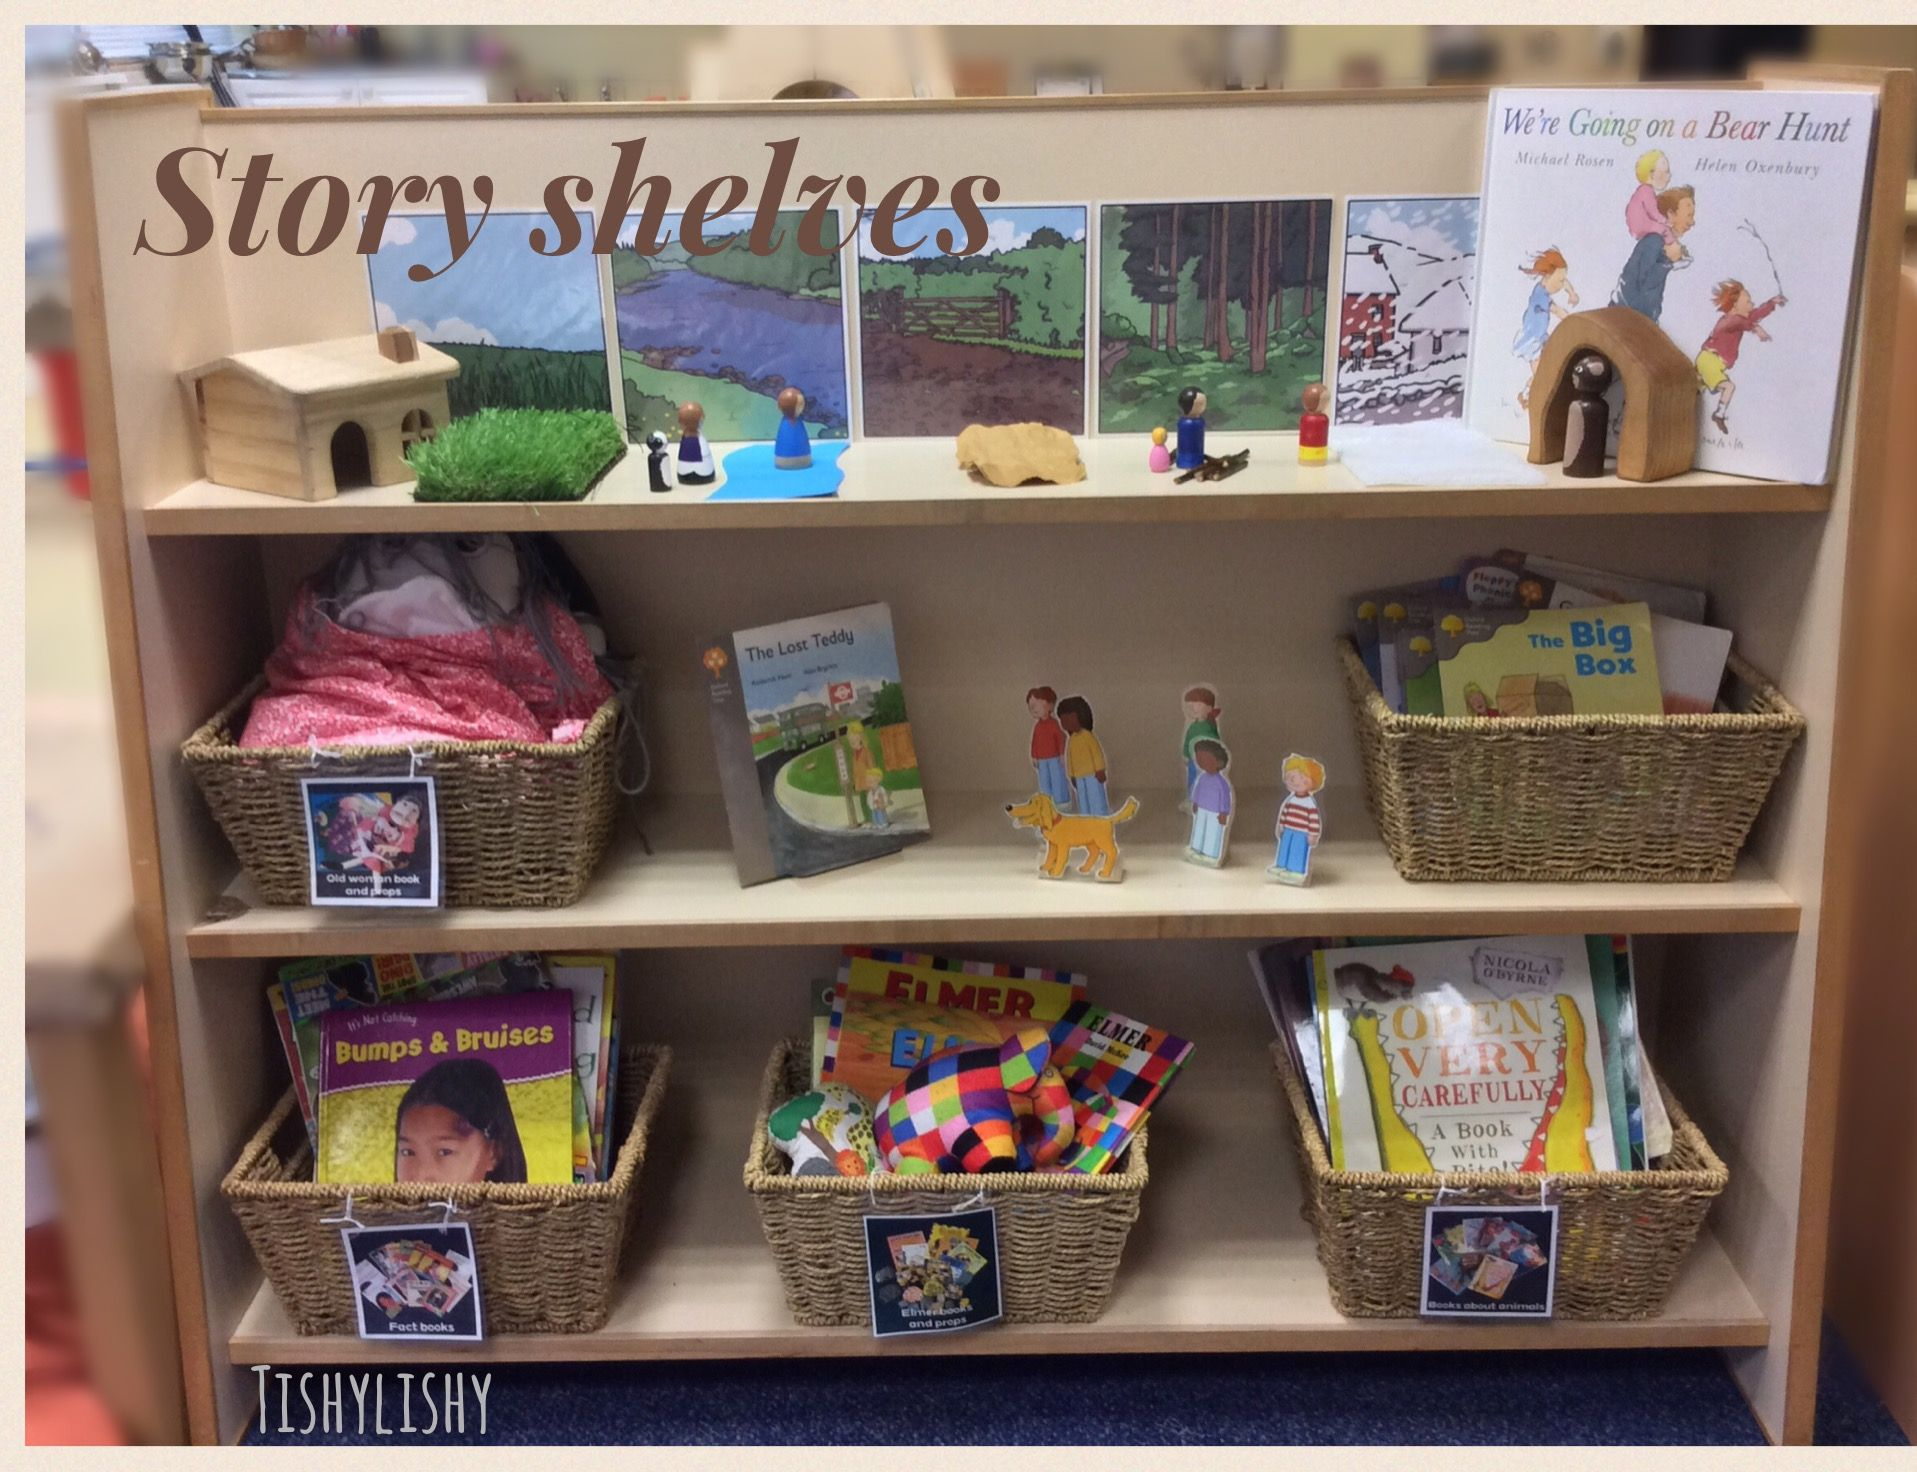 Updated story shelves in my early years classroom